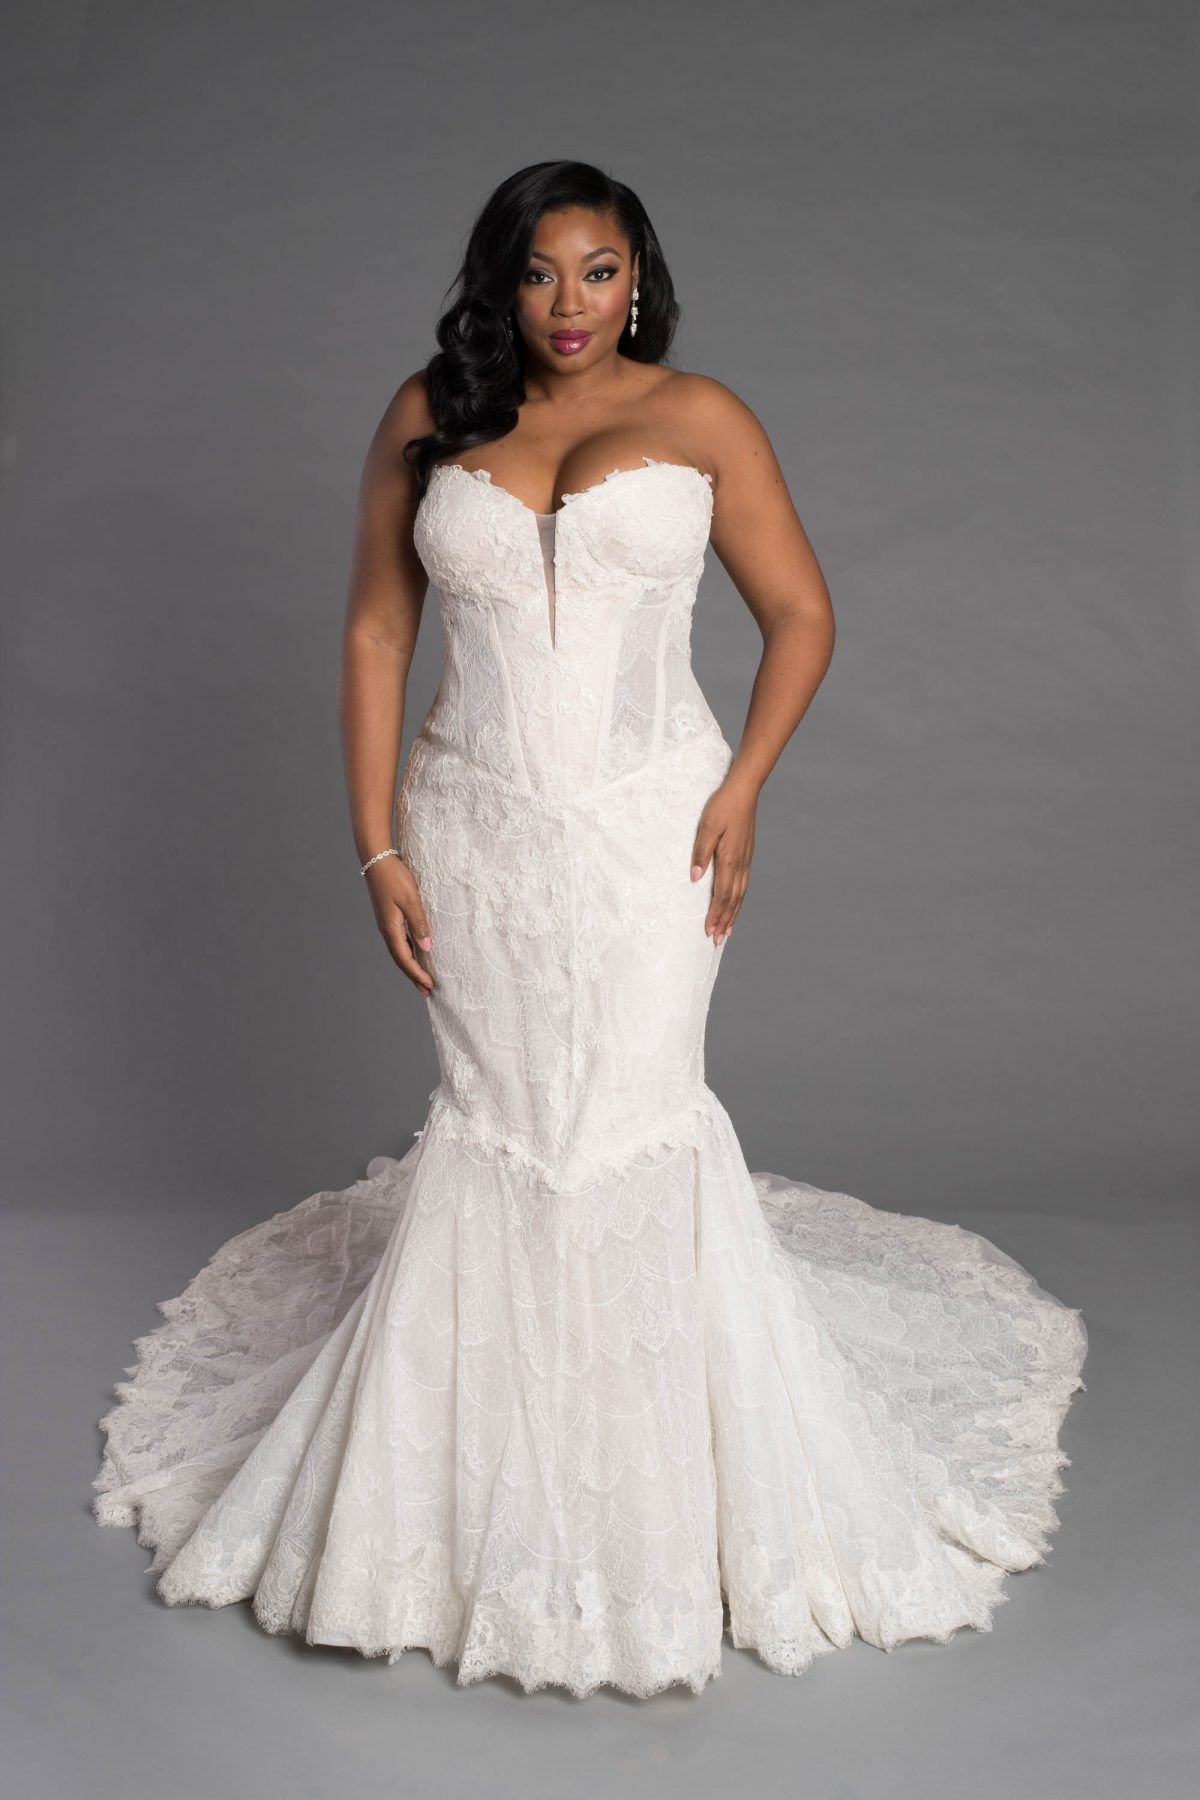 Corseted lace sheath with dropped waist and train pnina tornai